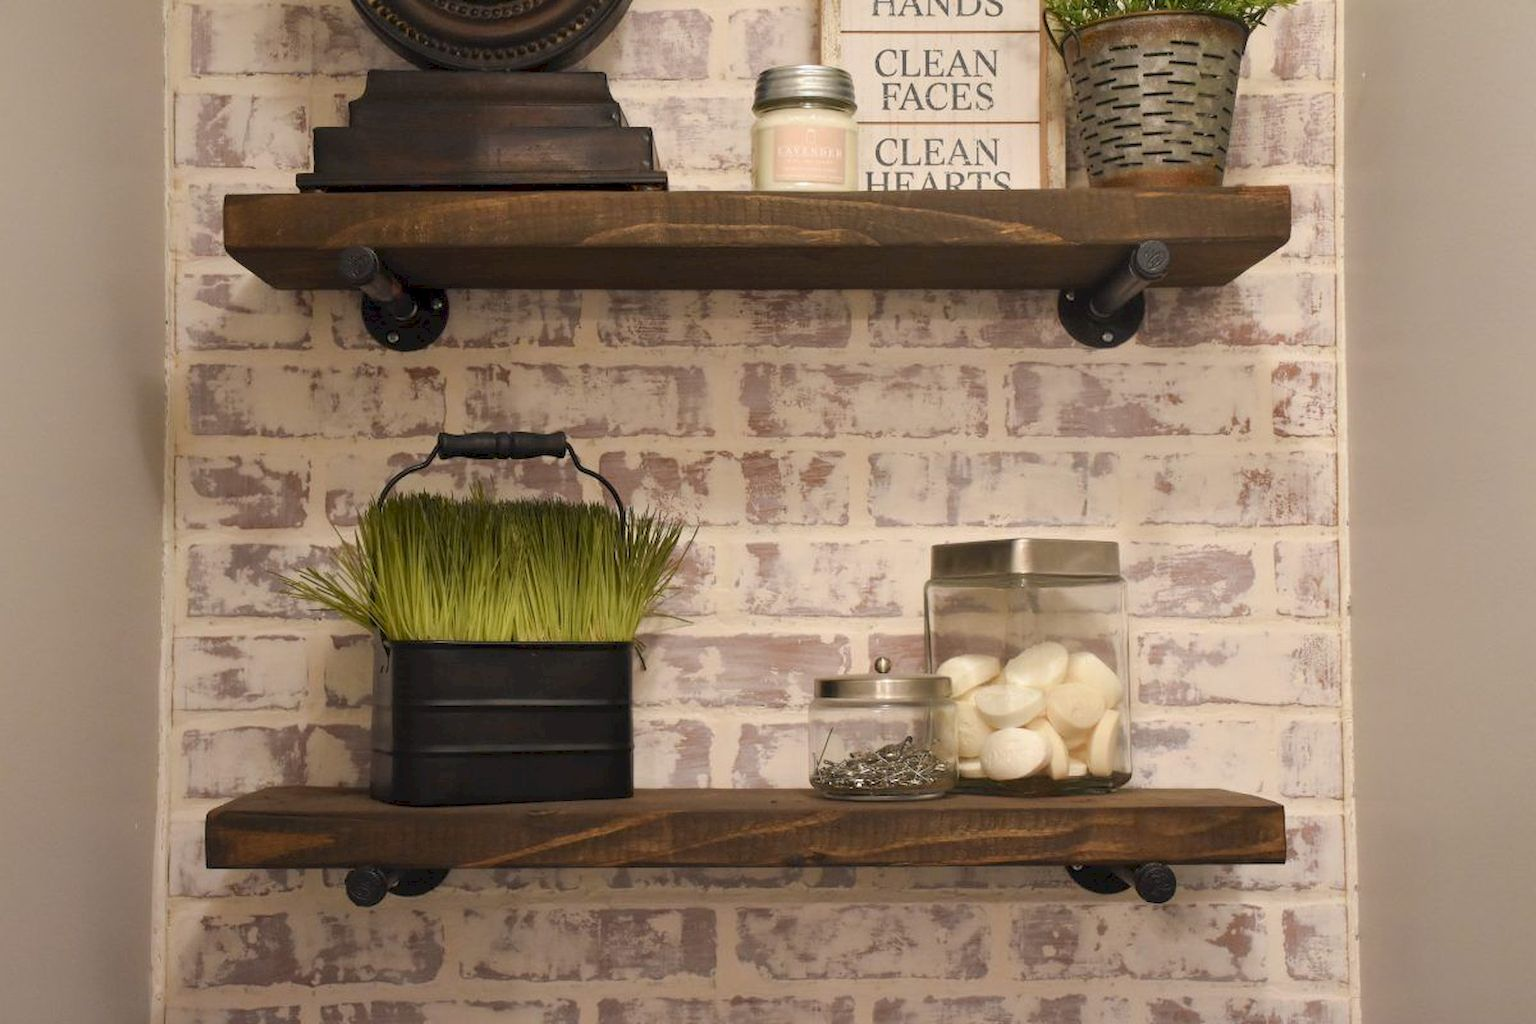 35 Diy Bathroom Shelf Ideas From Wood Pallets Elonahome Com